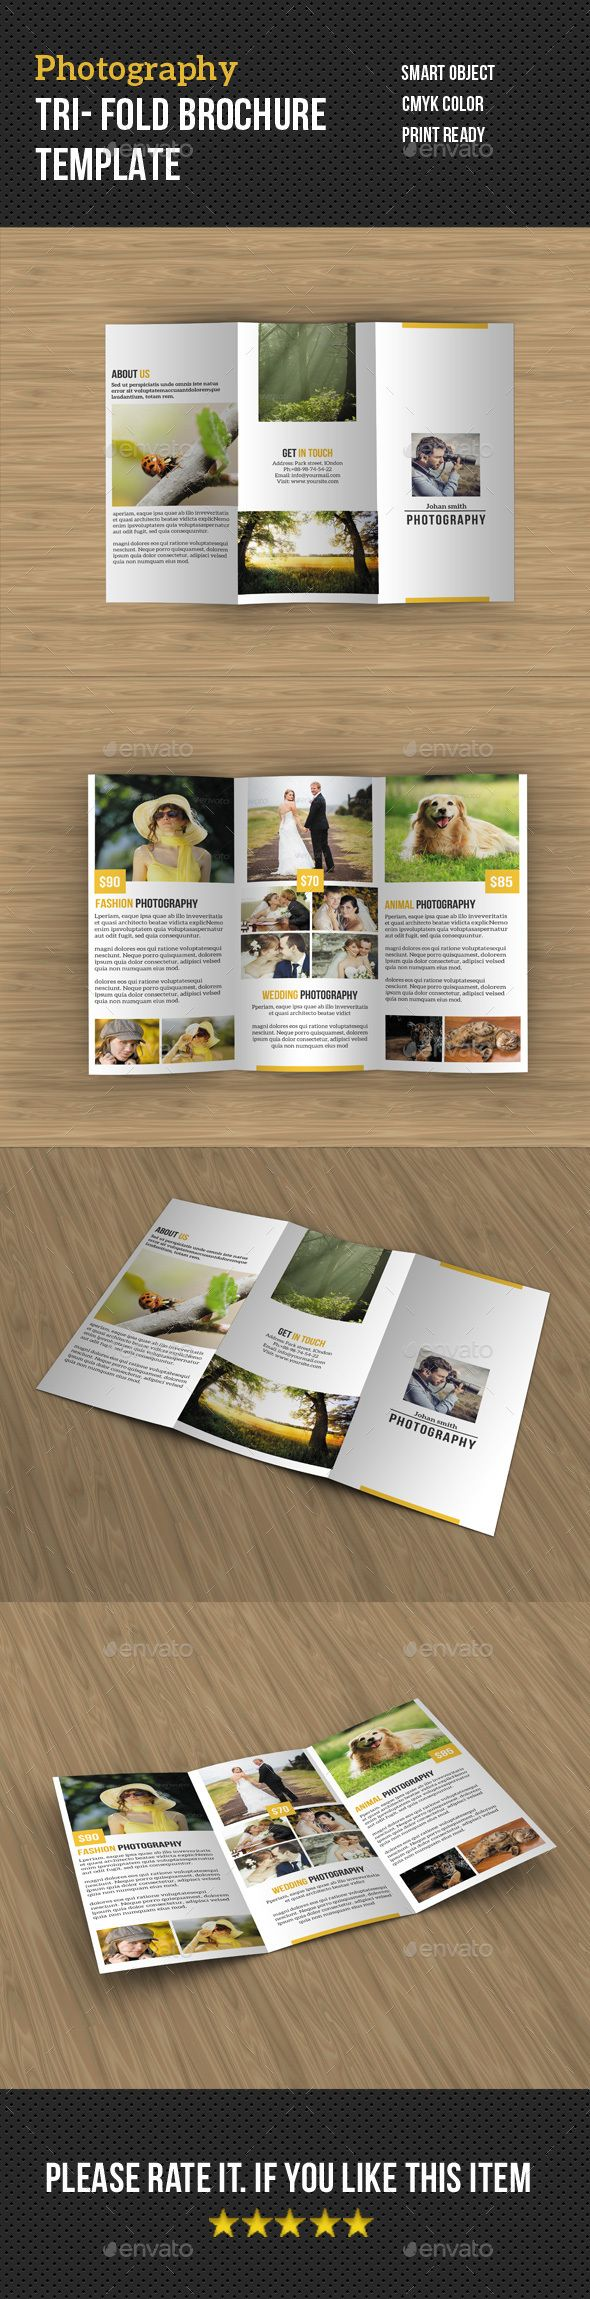 Photography Tri fold Brochure Template PSD #design Download: http://graphicriver.net/item/photography-tri-fold-brochure/13960704?ref=ksioks